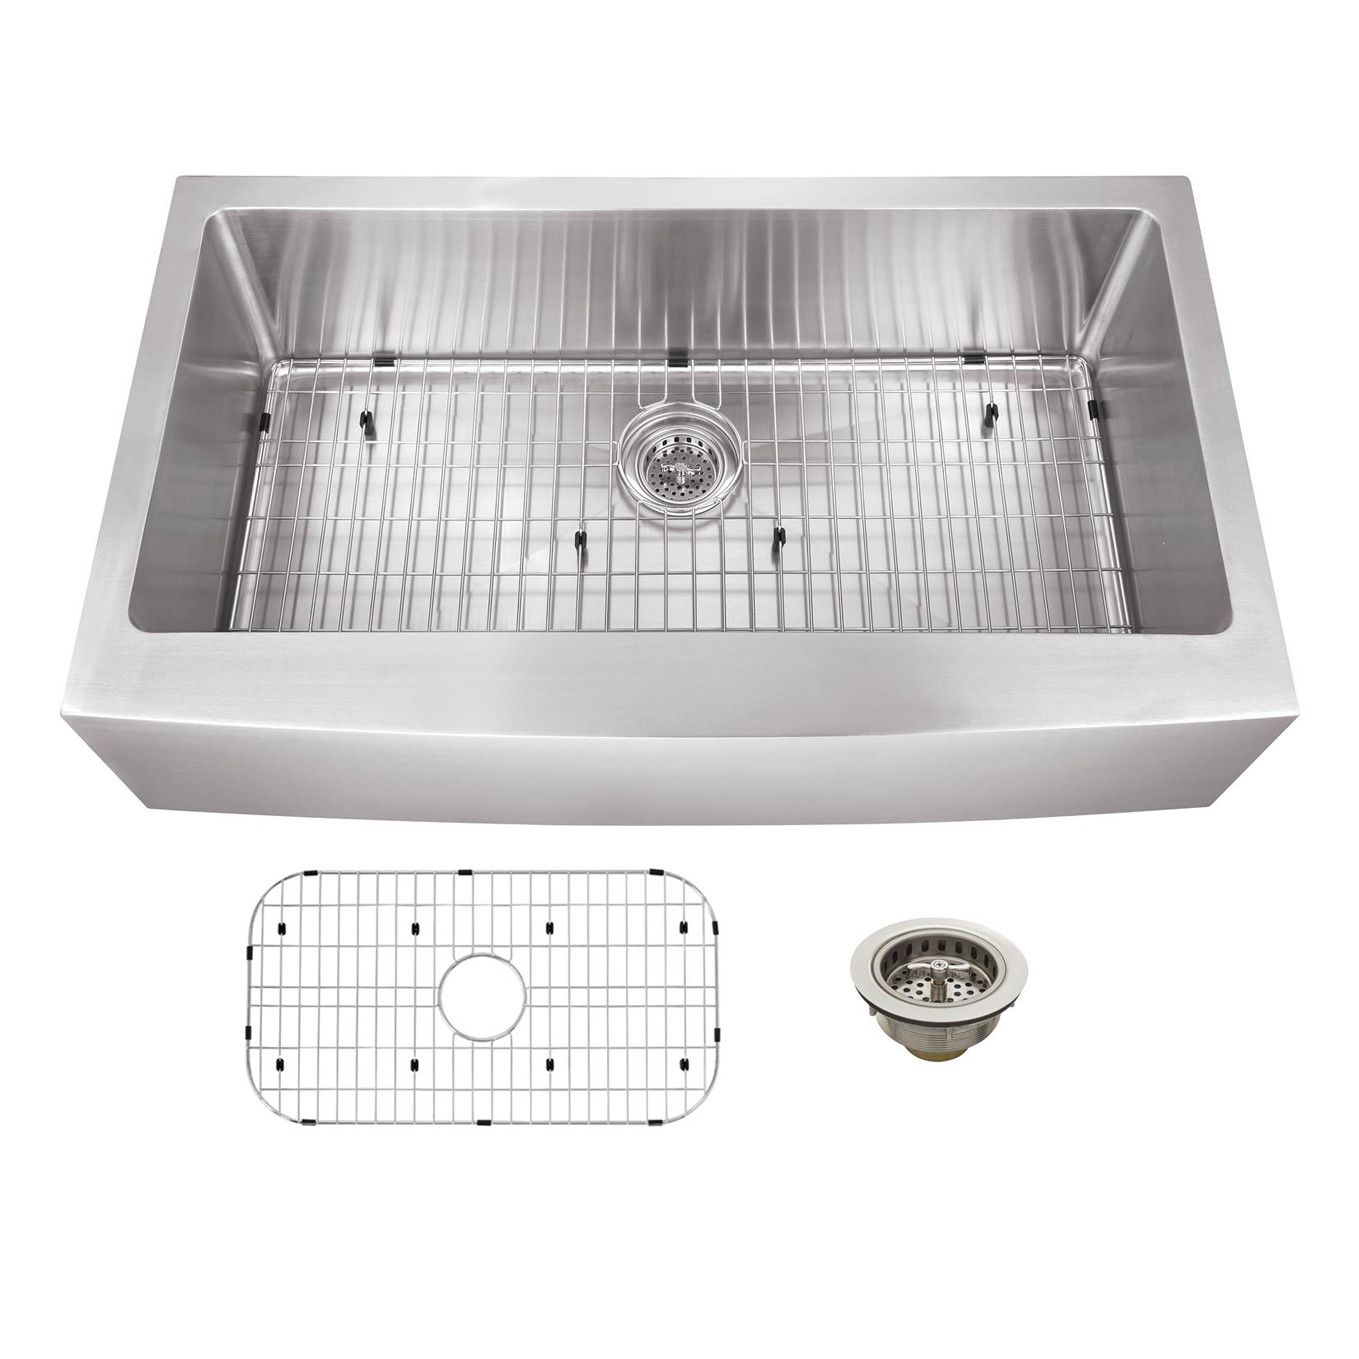 soleil 36   x 20   stainless steel 16 gauge apron front single bowl kitchen sink soleil 36   x 20   stainless steel 16 gauge apron front single bowl      rh   pinterest com